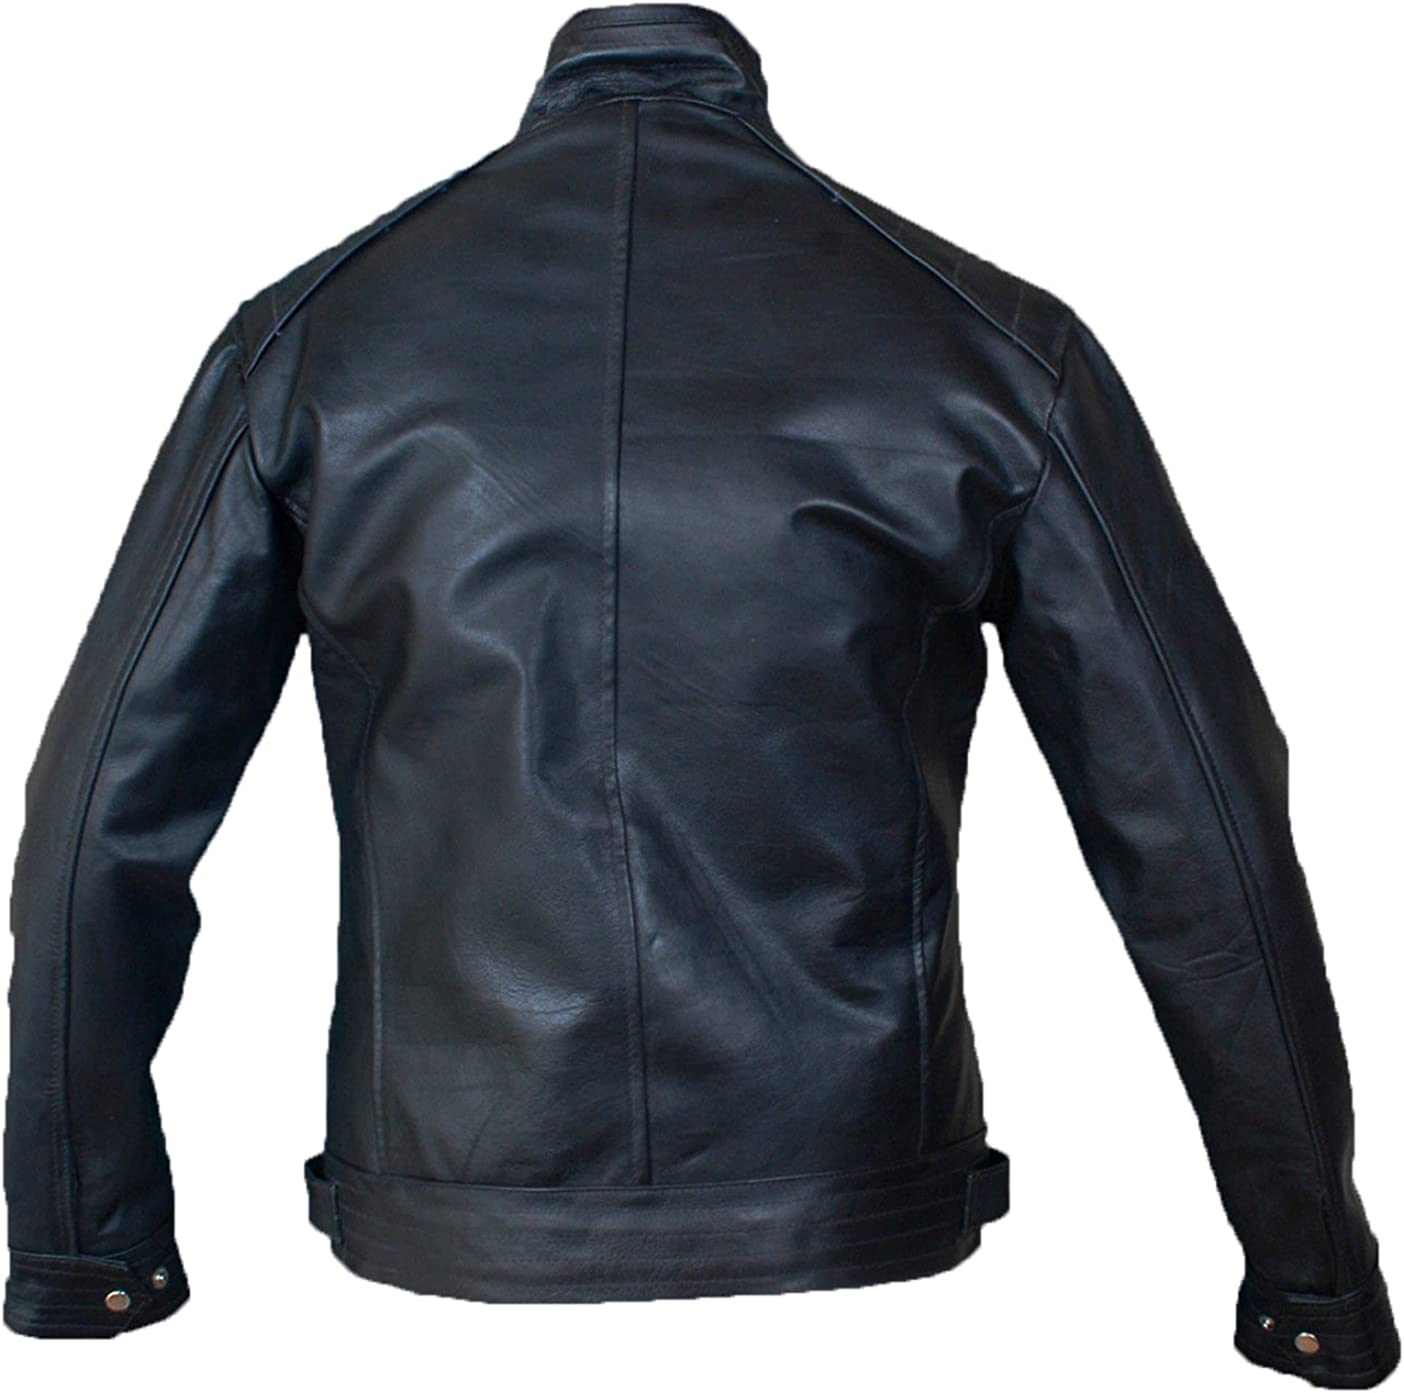 New Genuine Cow Leather Designer Jacket Motorcycle Biker Mens S M L XL LFC991